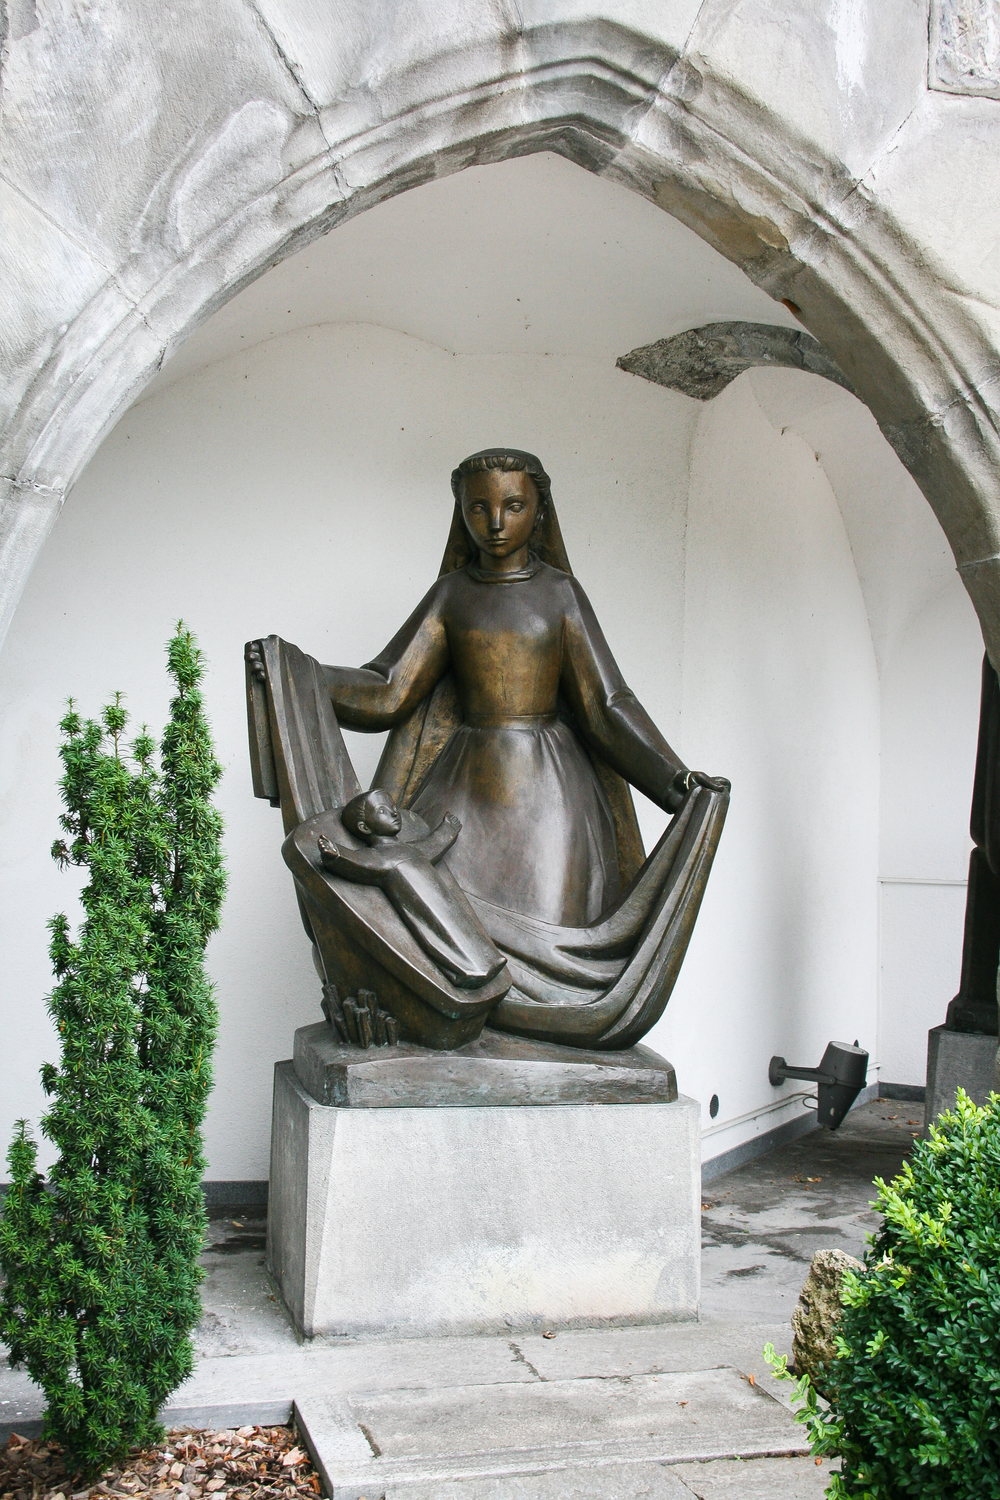 Vaduz.  St. Florin Cathedral, church art in the yard, part 2.